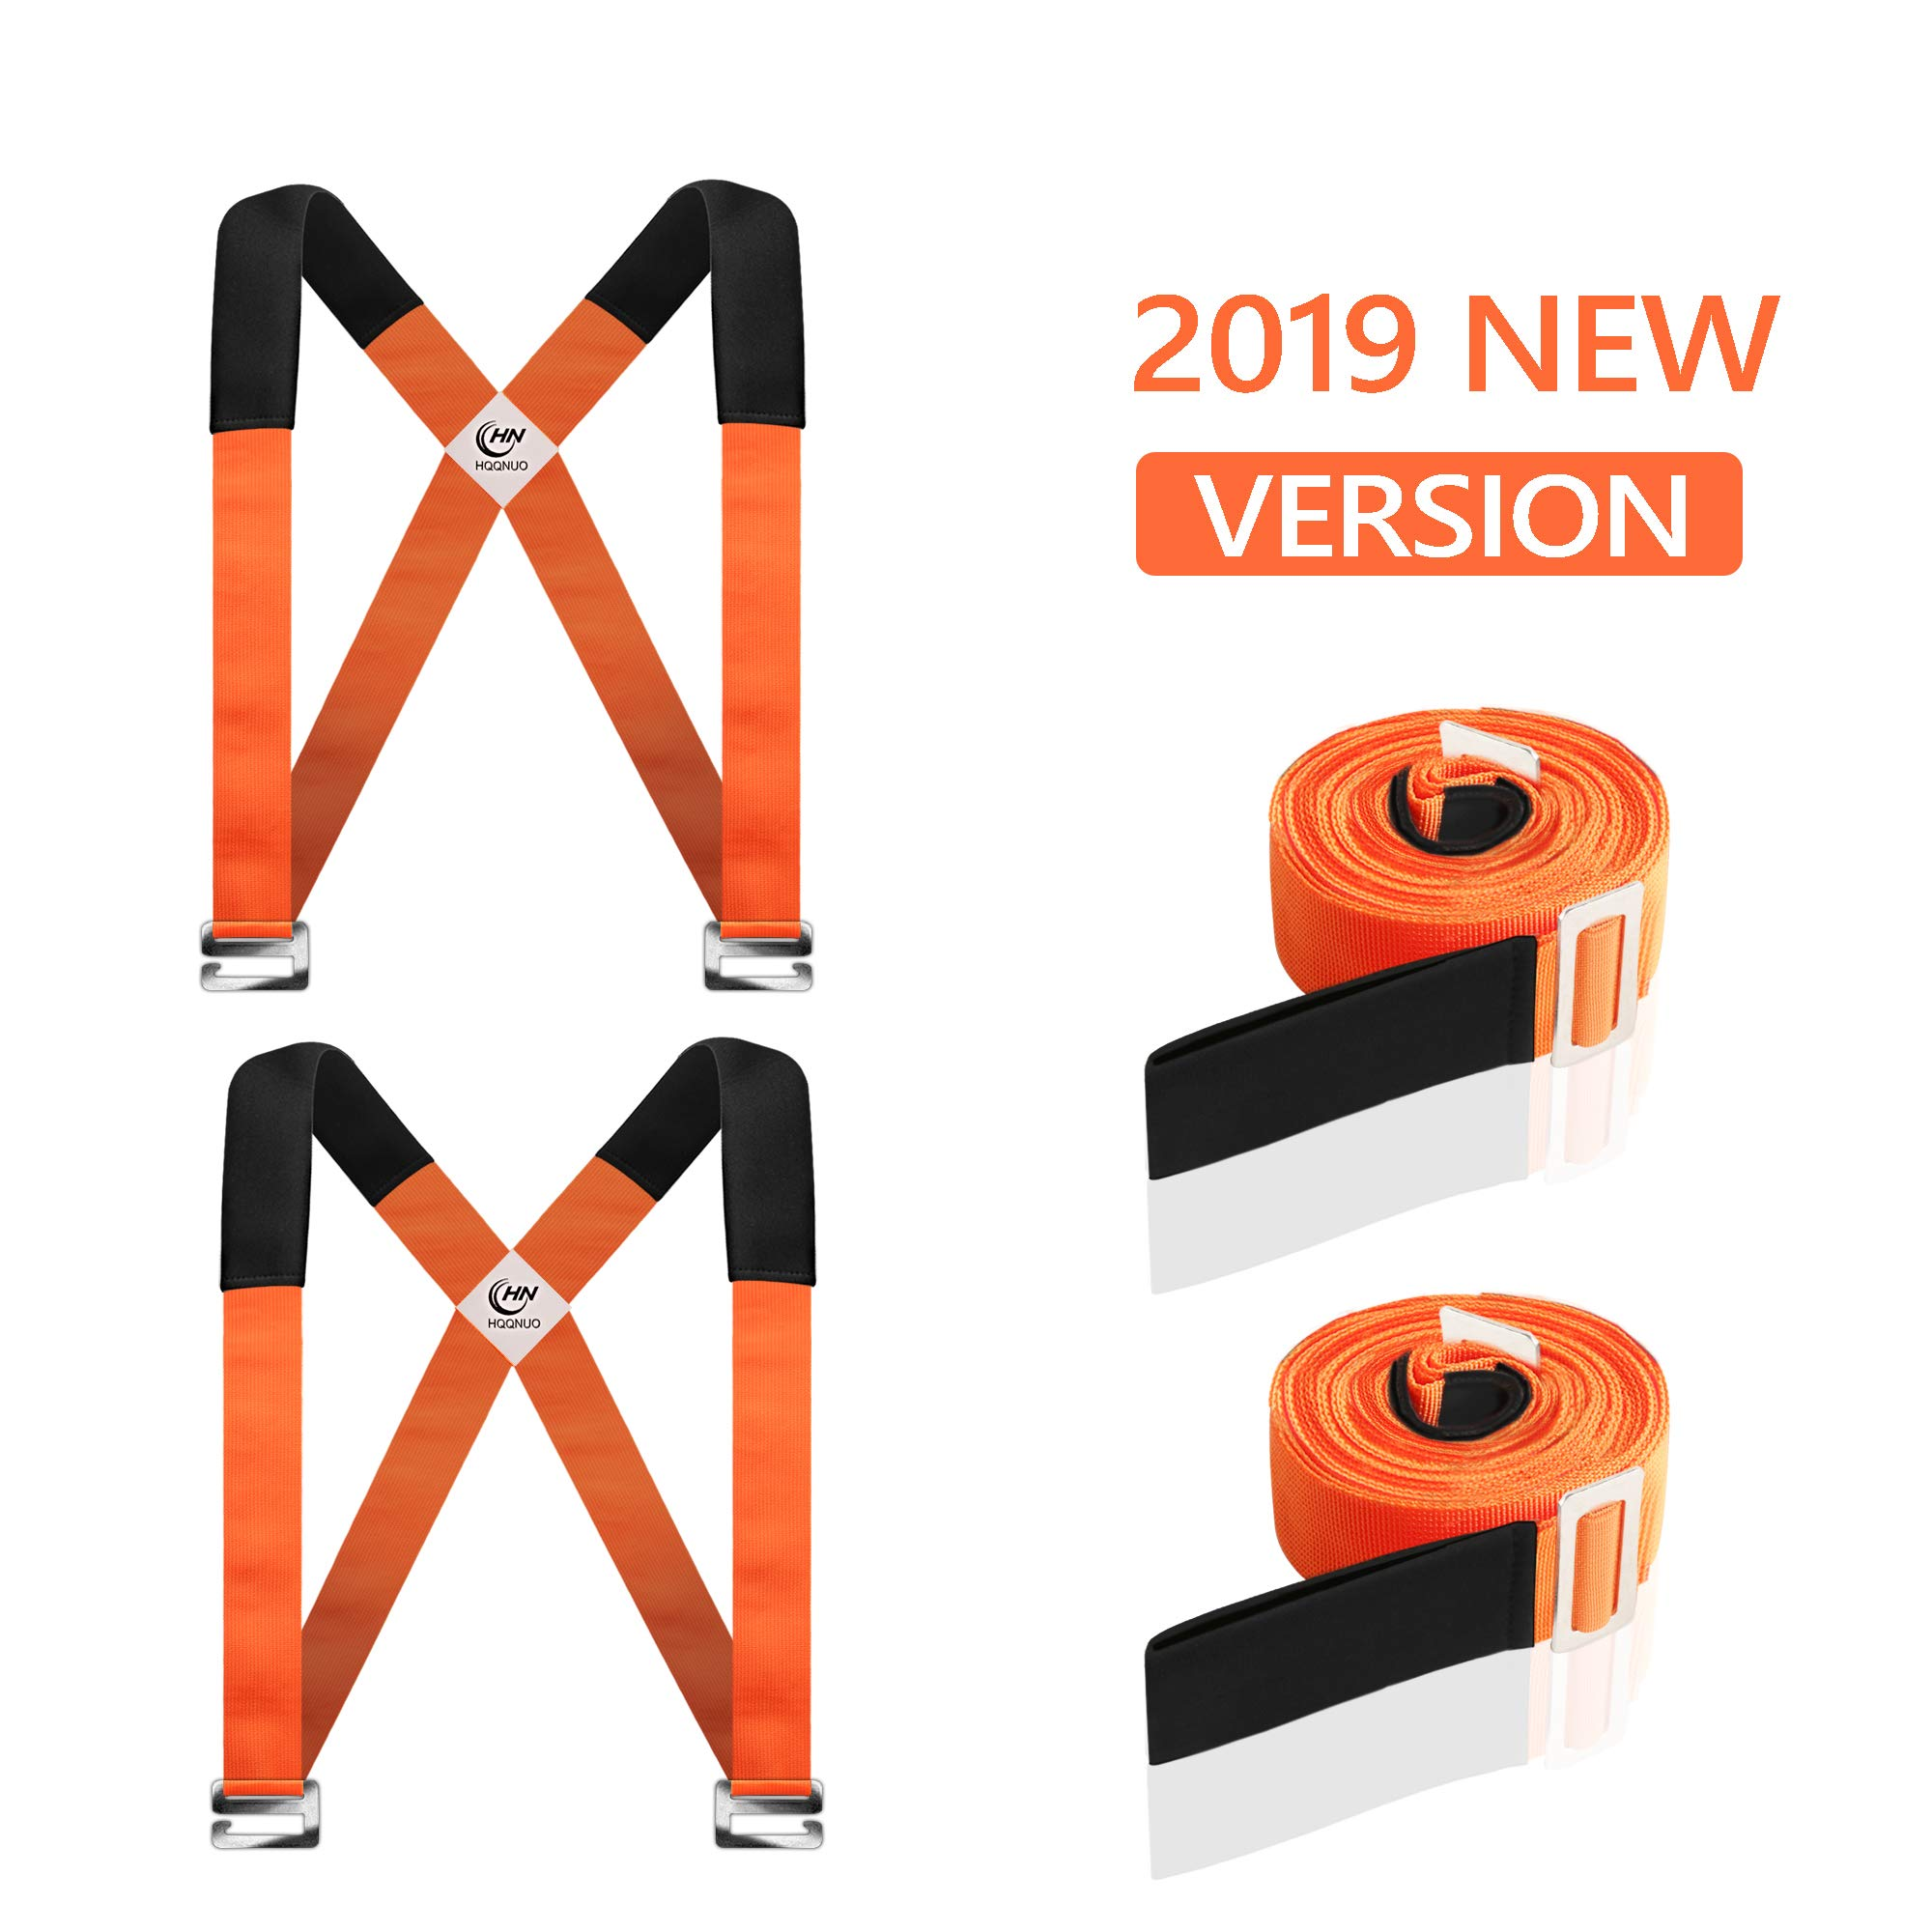 Moving Straps, 2-Person Lifting and Moving System - Easily Move, Lift, Carry Furniture, Appliances, Mattresses, Heavy Object Without Back Pain. Great Tool for Moving Supplies by HQQNUO